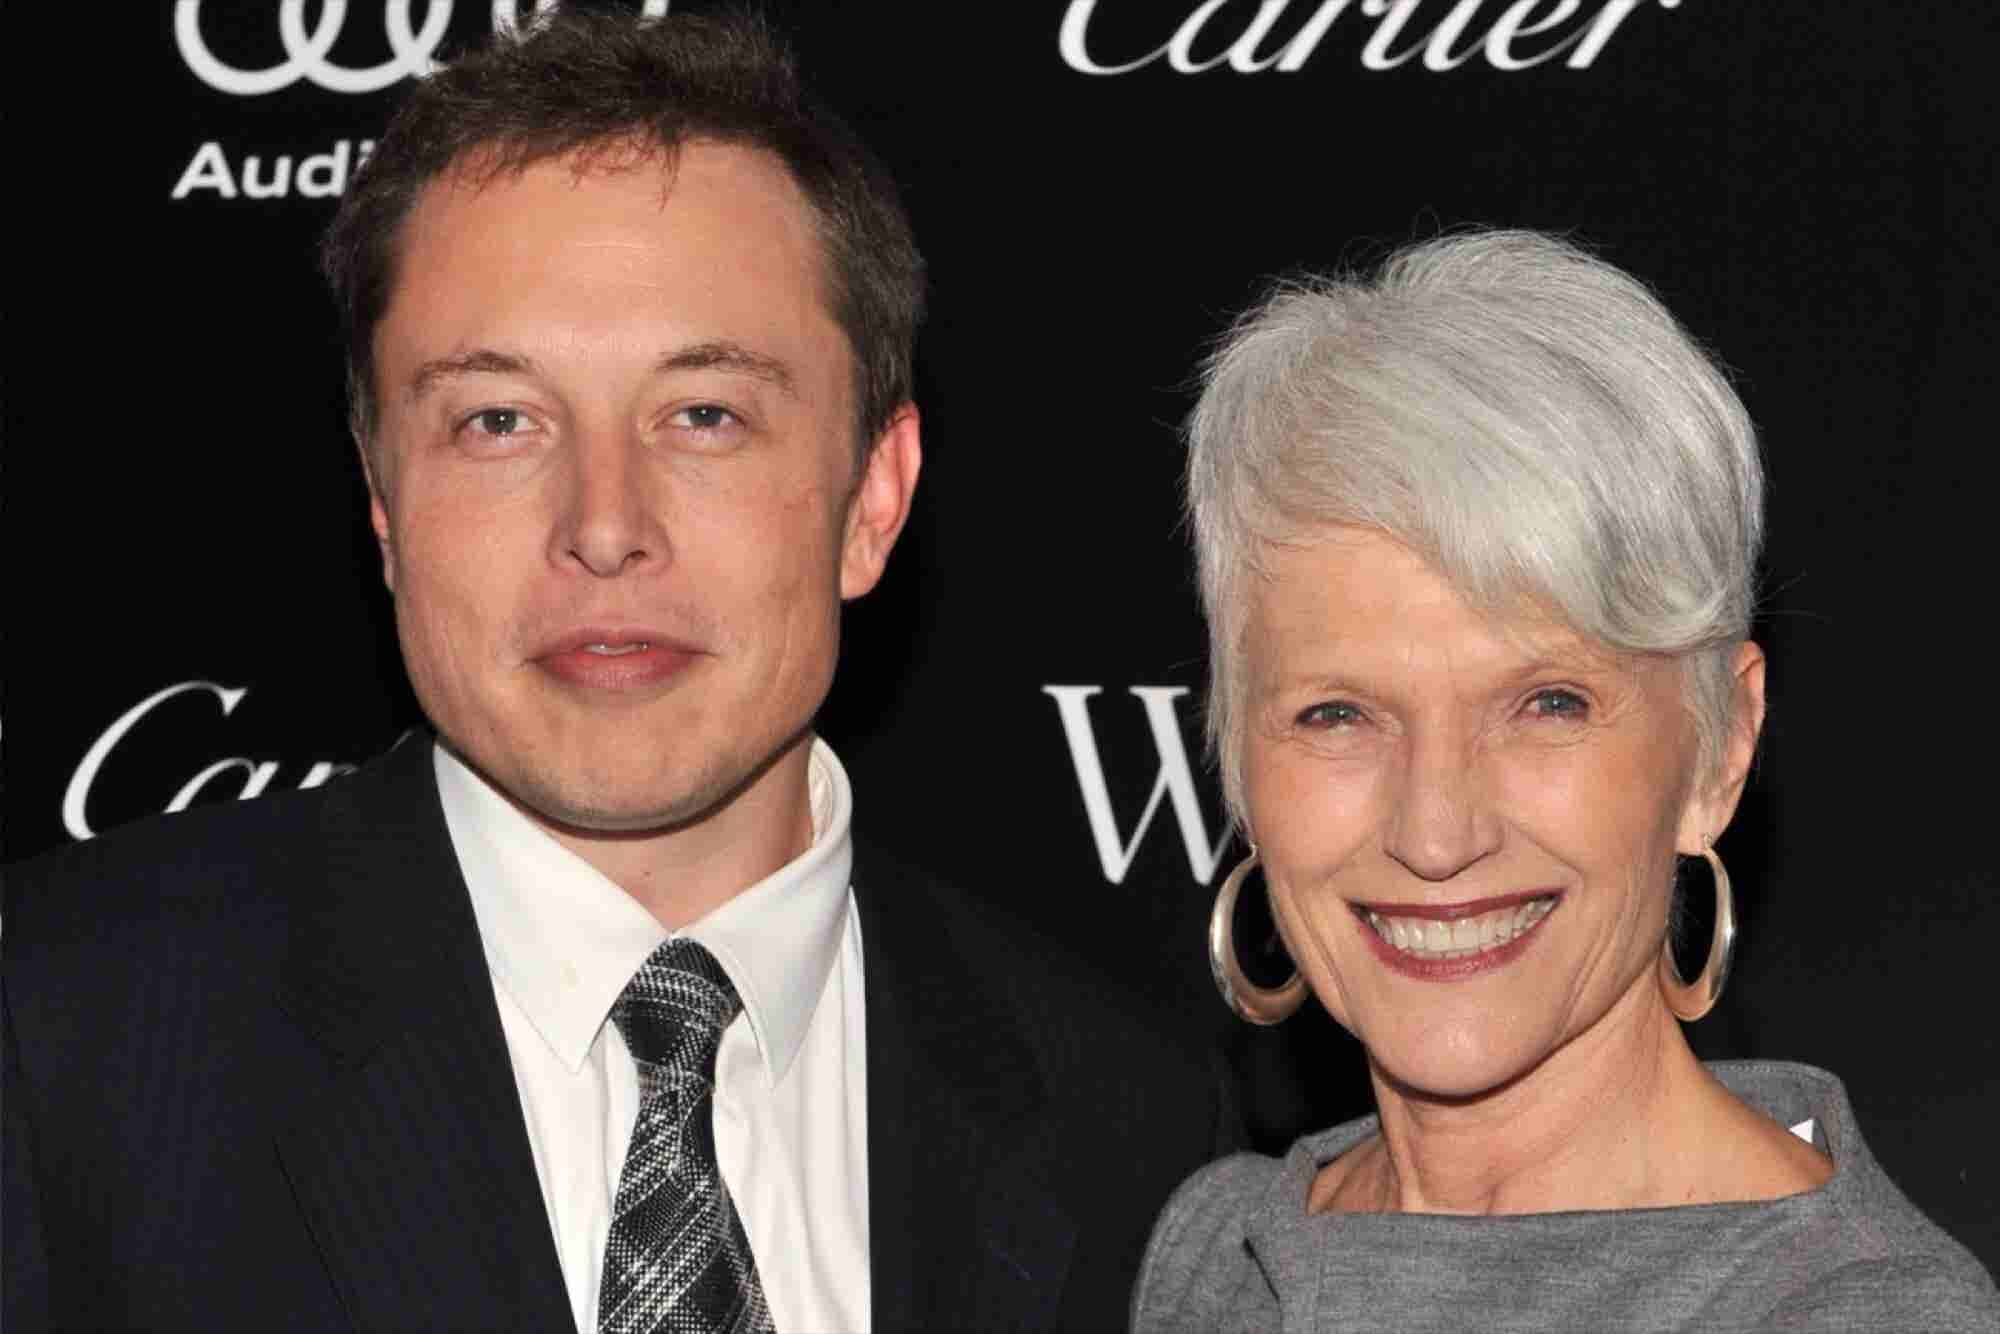 From Elon Musk to Richard Branson: What These 5 Entrepreneurial Leaders Learned From Their Mothers